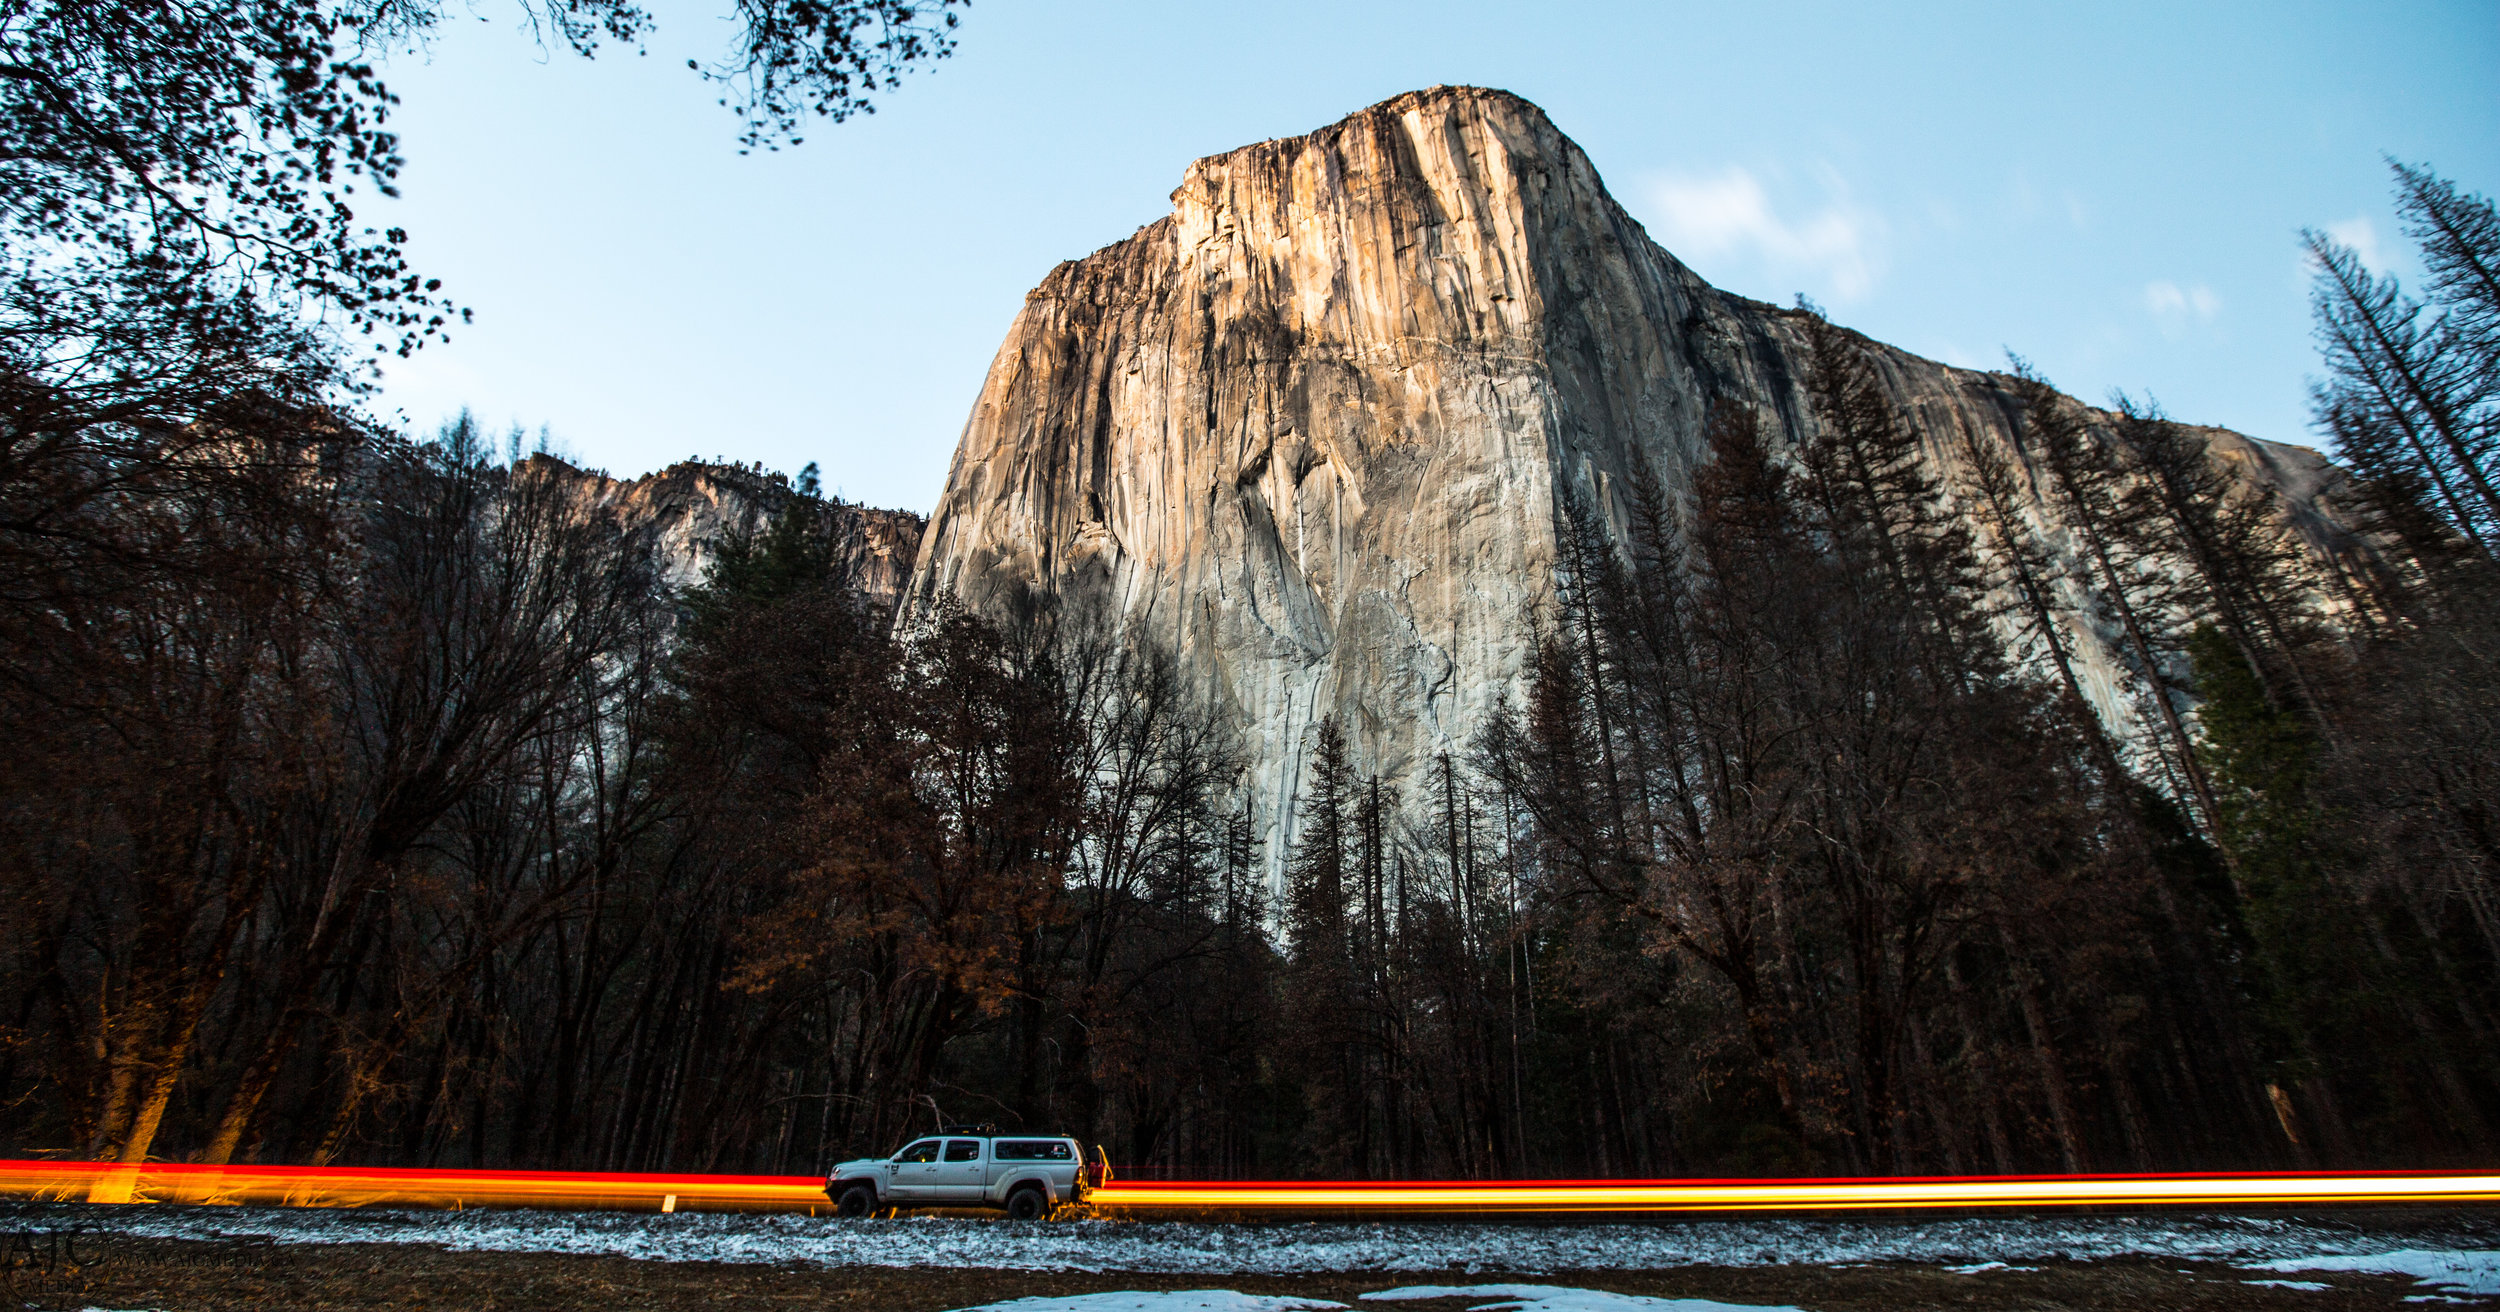 Long exposure with moving cars and El Capitan in the back ground make for a somewhat surreal effect.